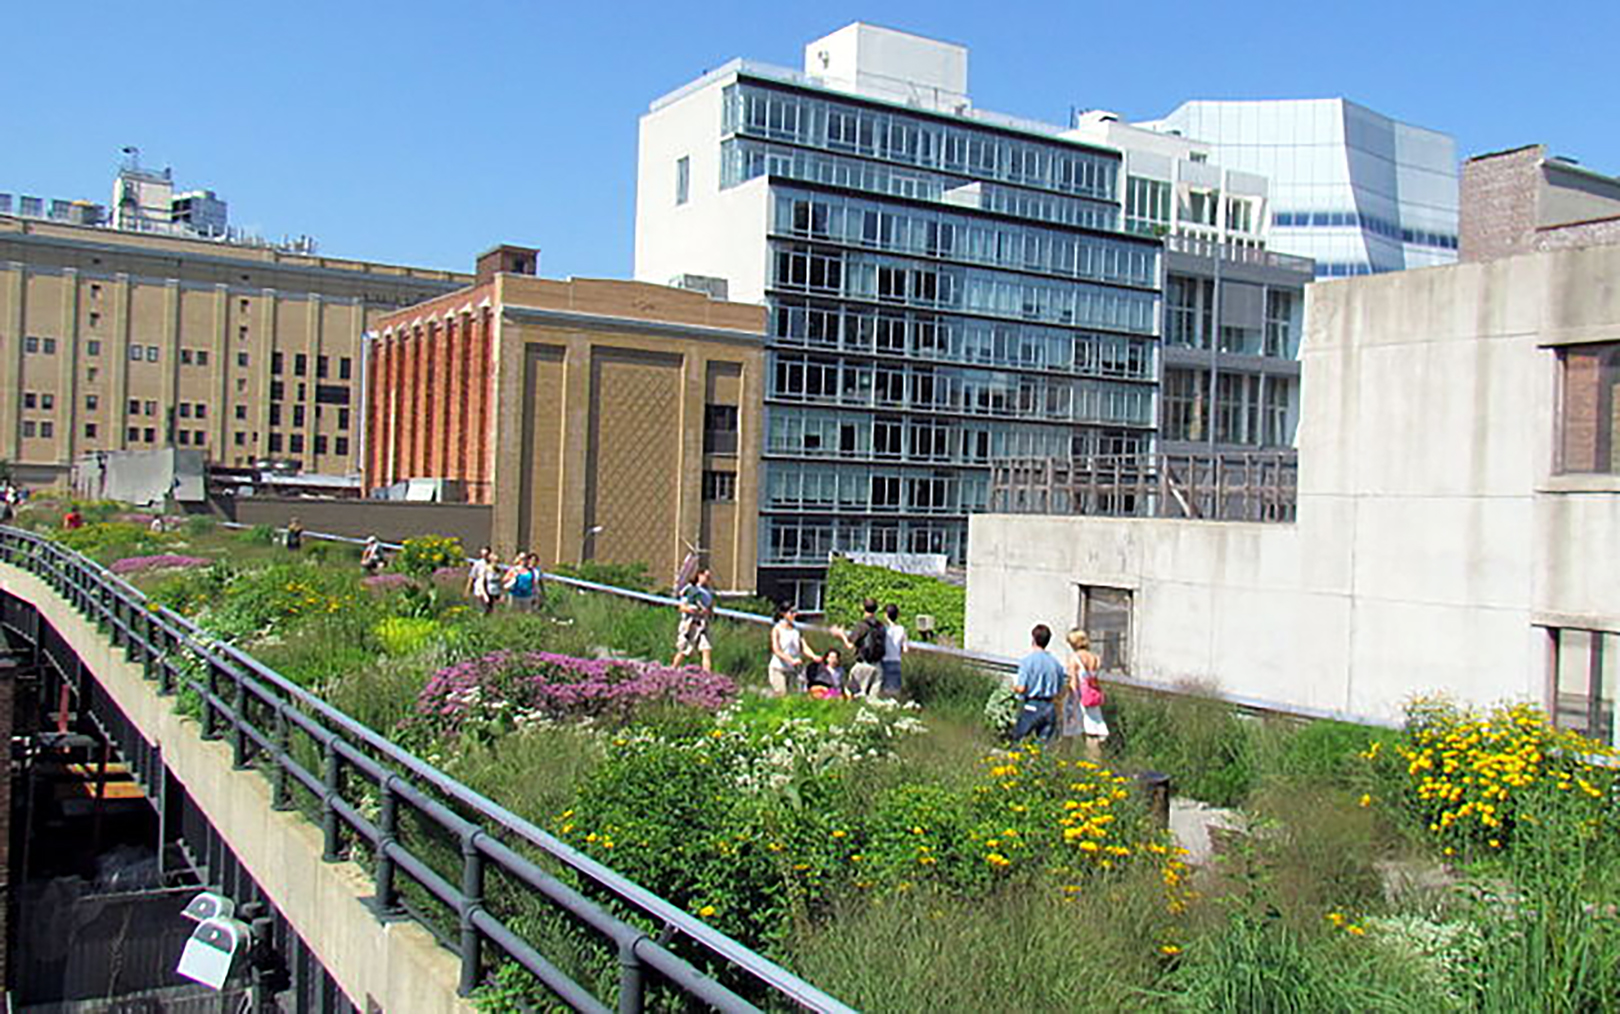 High Line Park by David Berkowitz CC BY 2.0